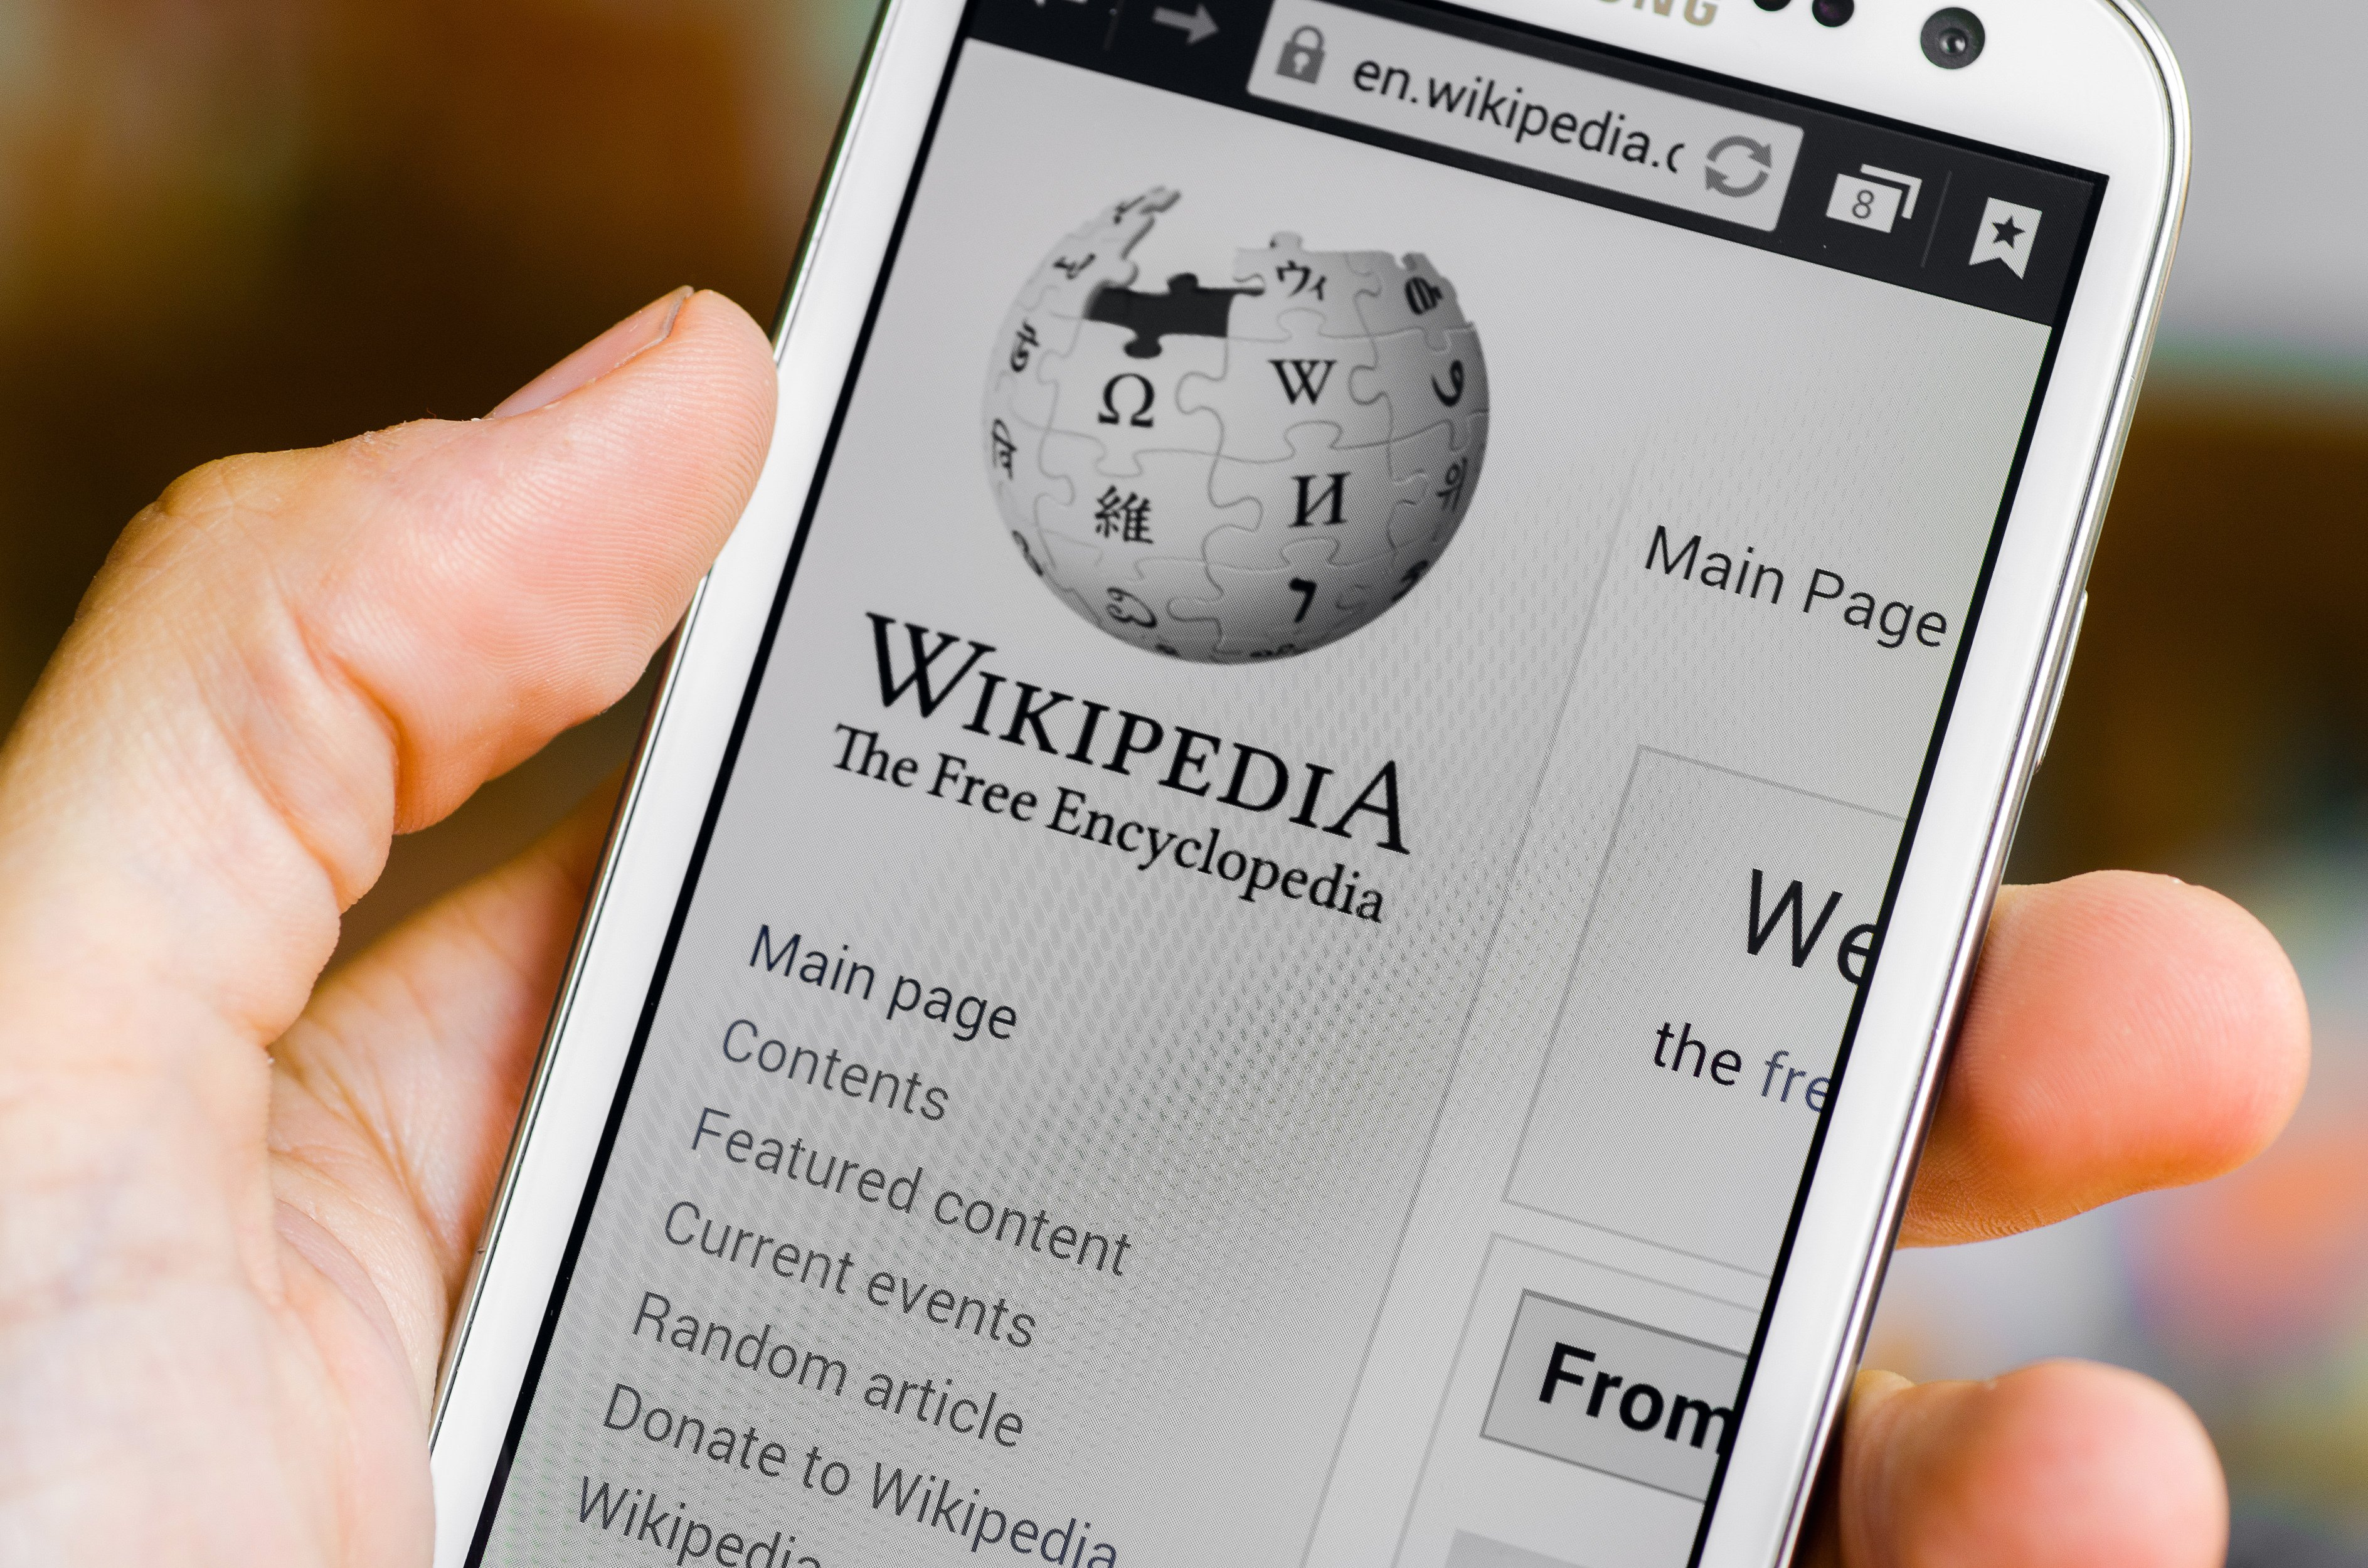 Smart Phone with Wikipedia main page screen